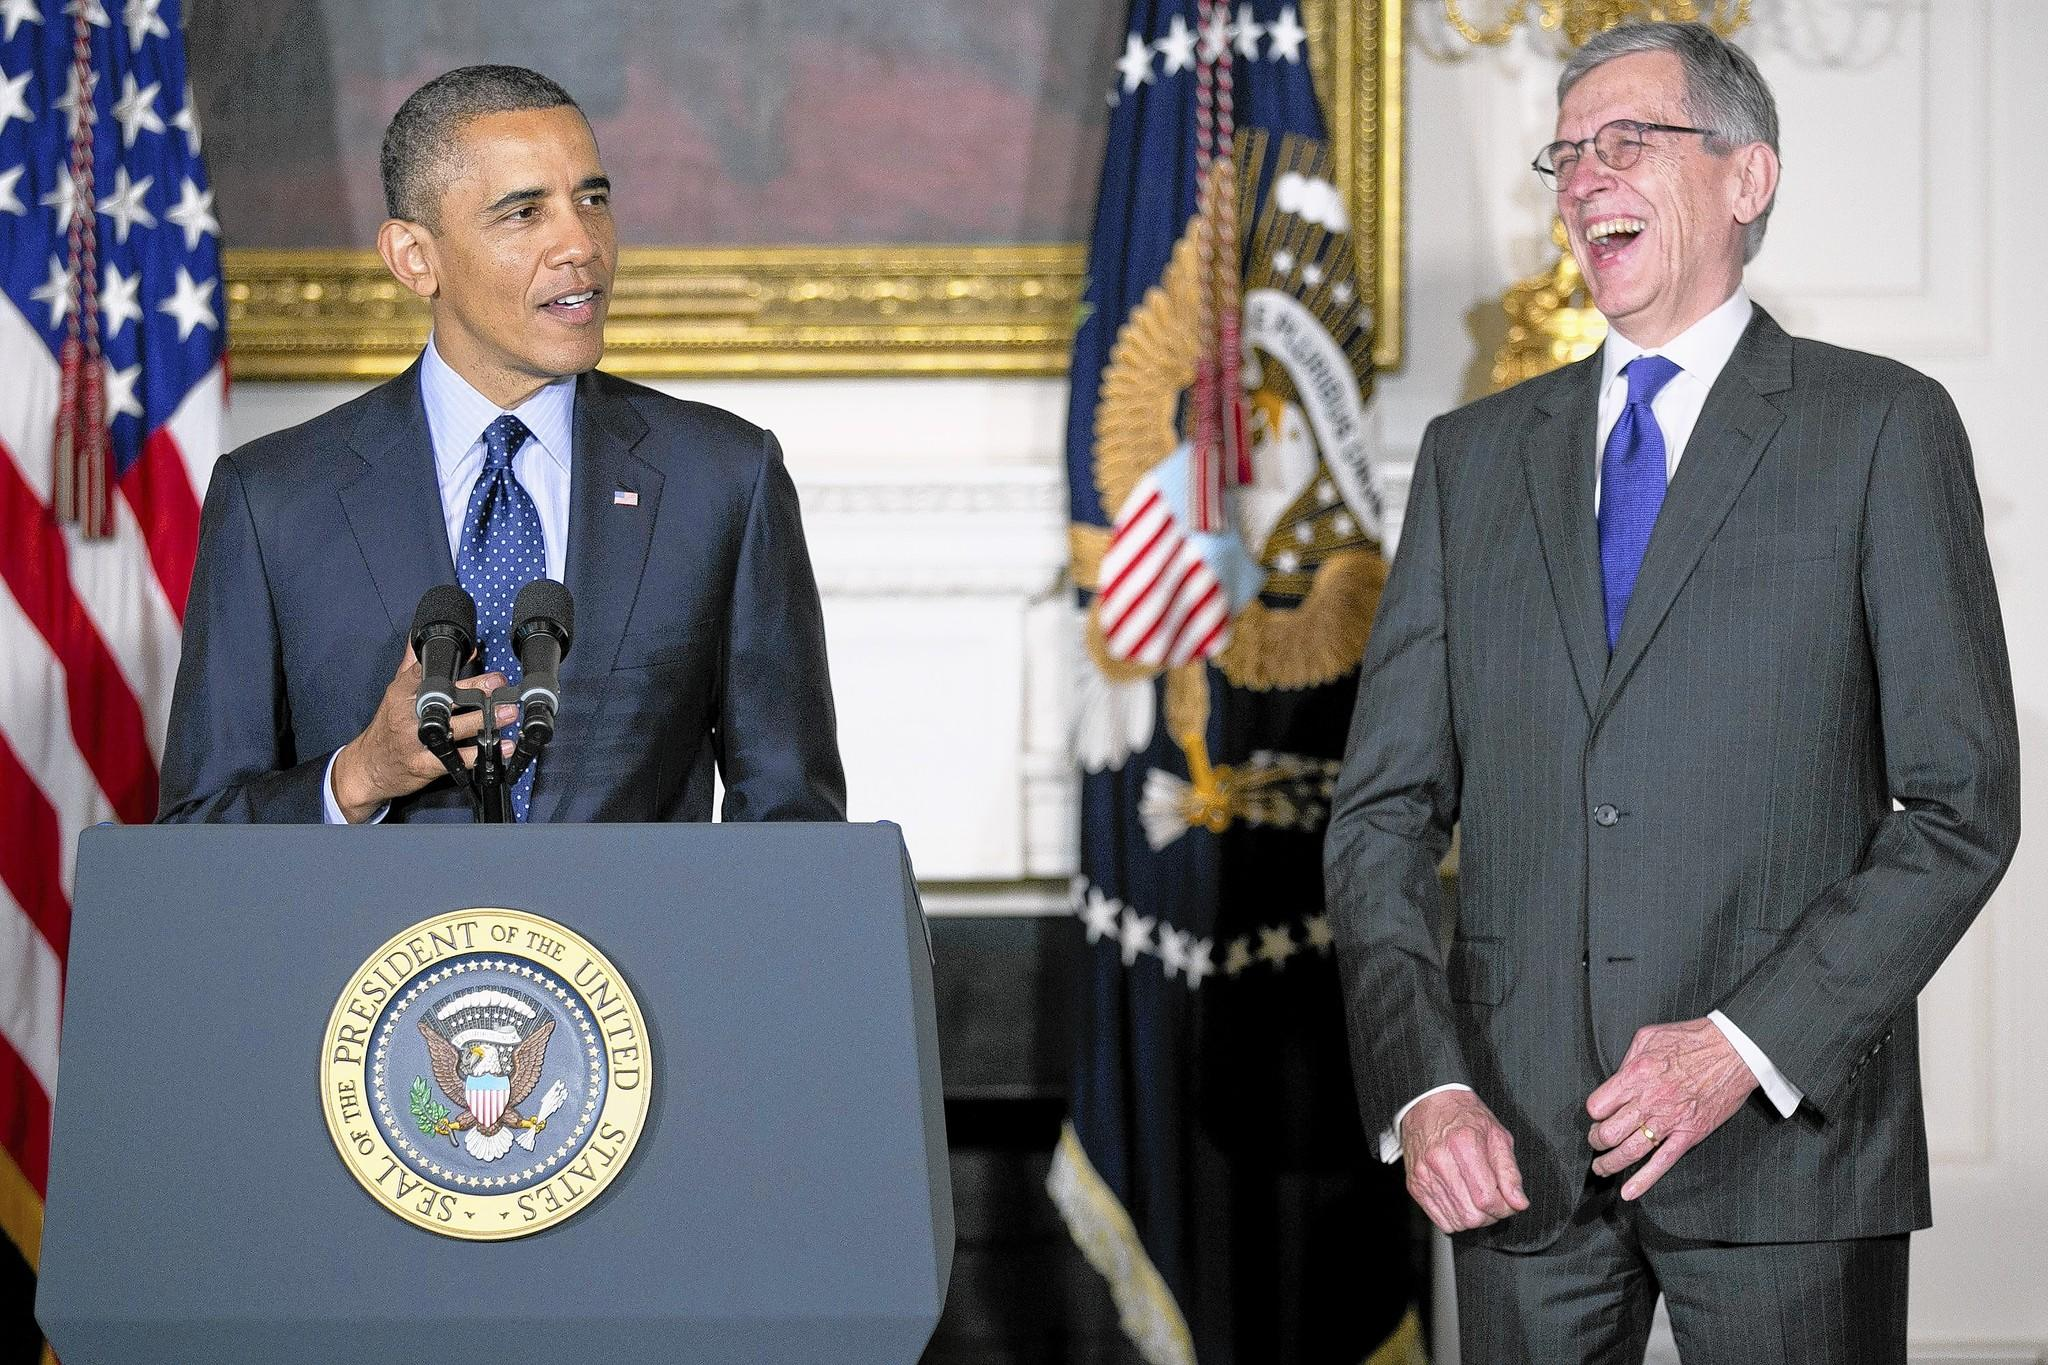 President Obama names Tom Wheeler as his nominee for FCC chairman in May 2013. A major fundraiser for Obama, Wheeler has extensive Washington experience.